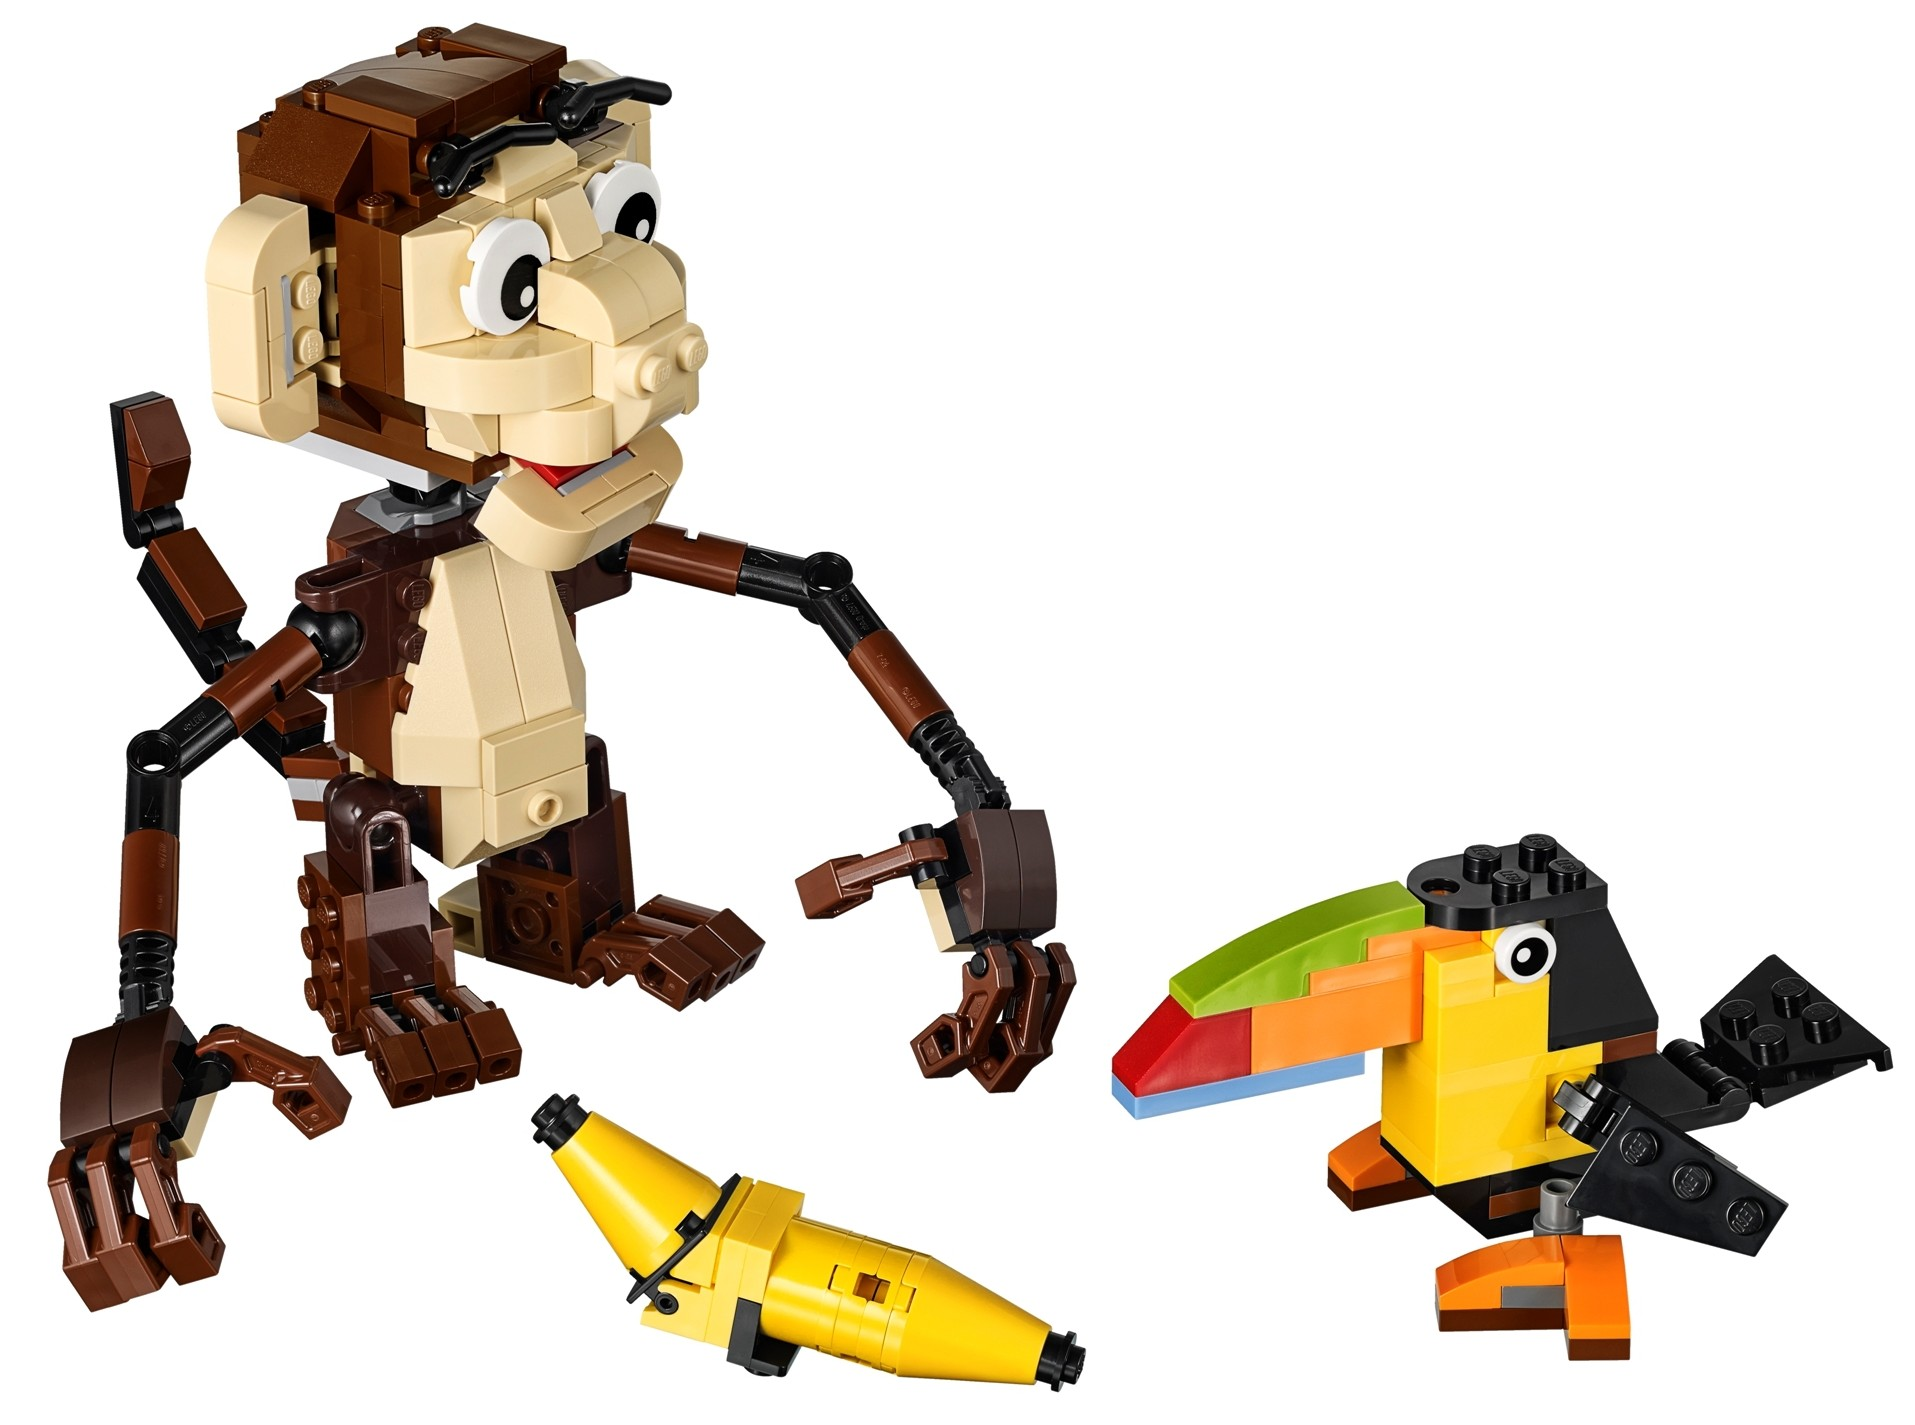 Awesome new Lego Creator sets